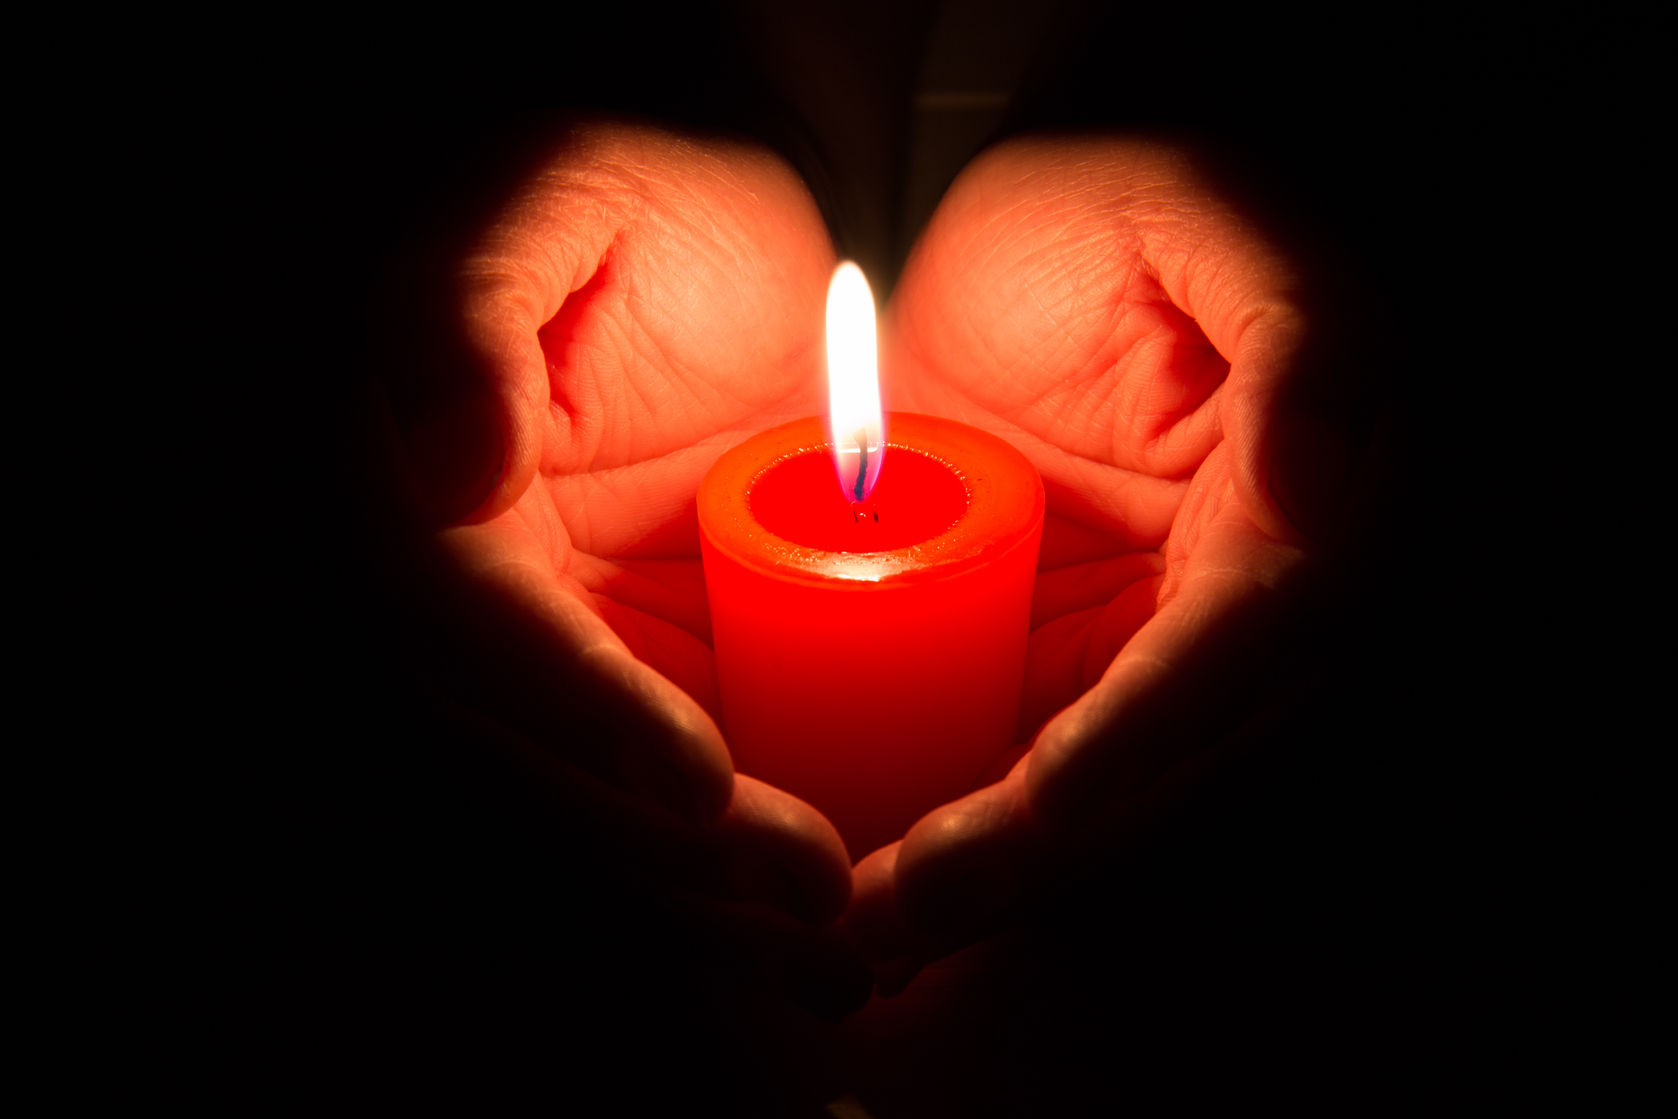 Heart Hands Holding a Candle.jpg